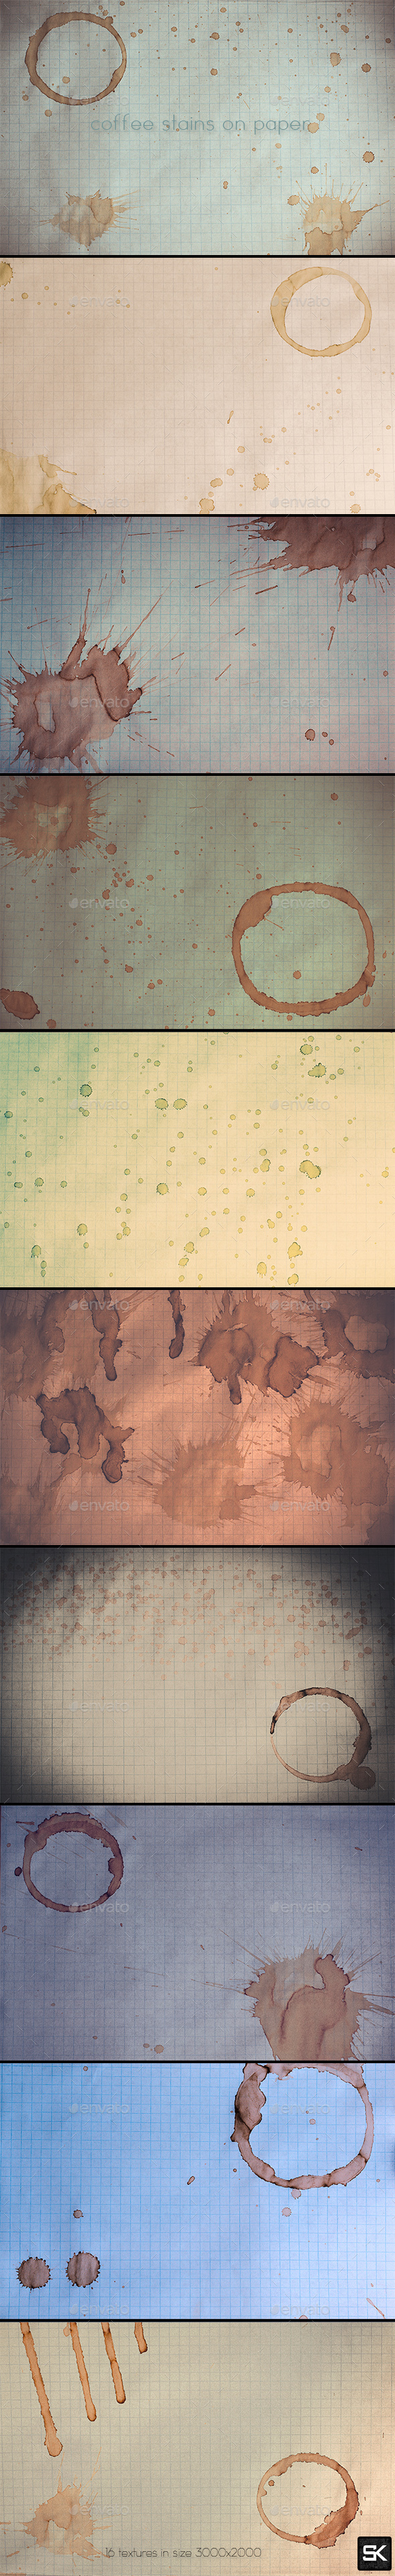 Coffee Stains On Paper - Paper Textures